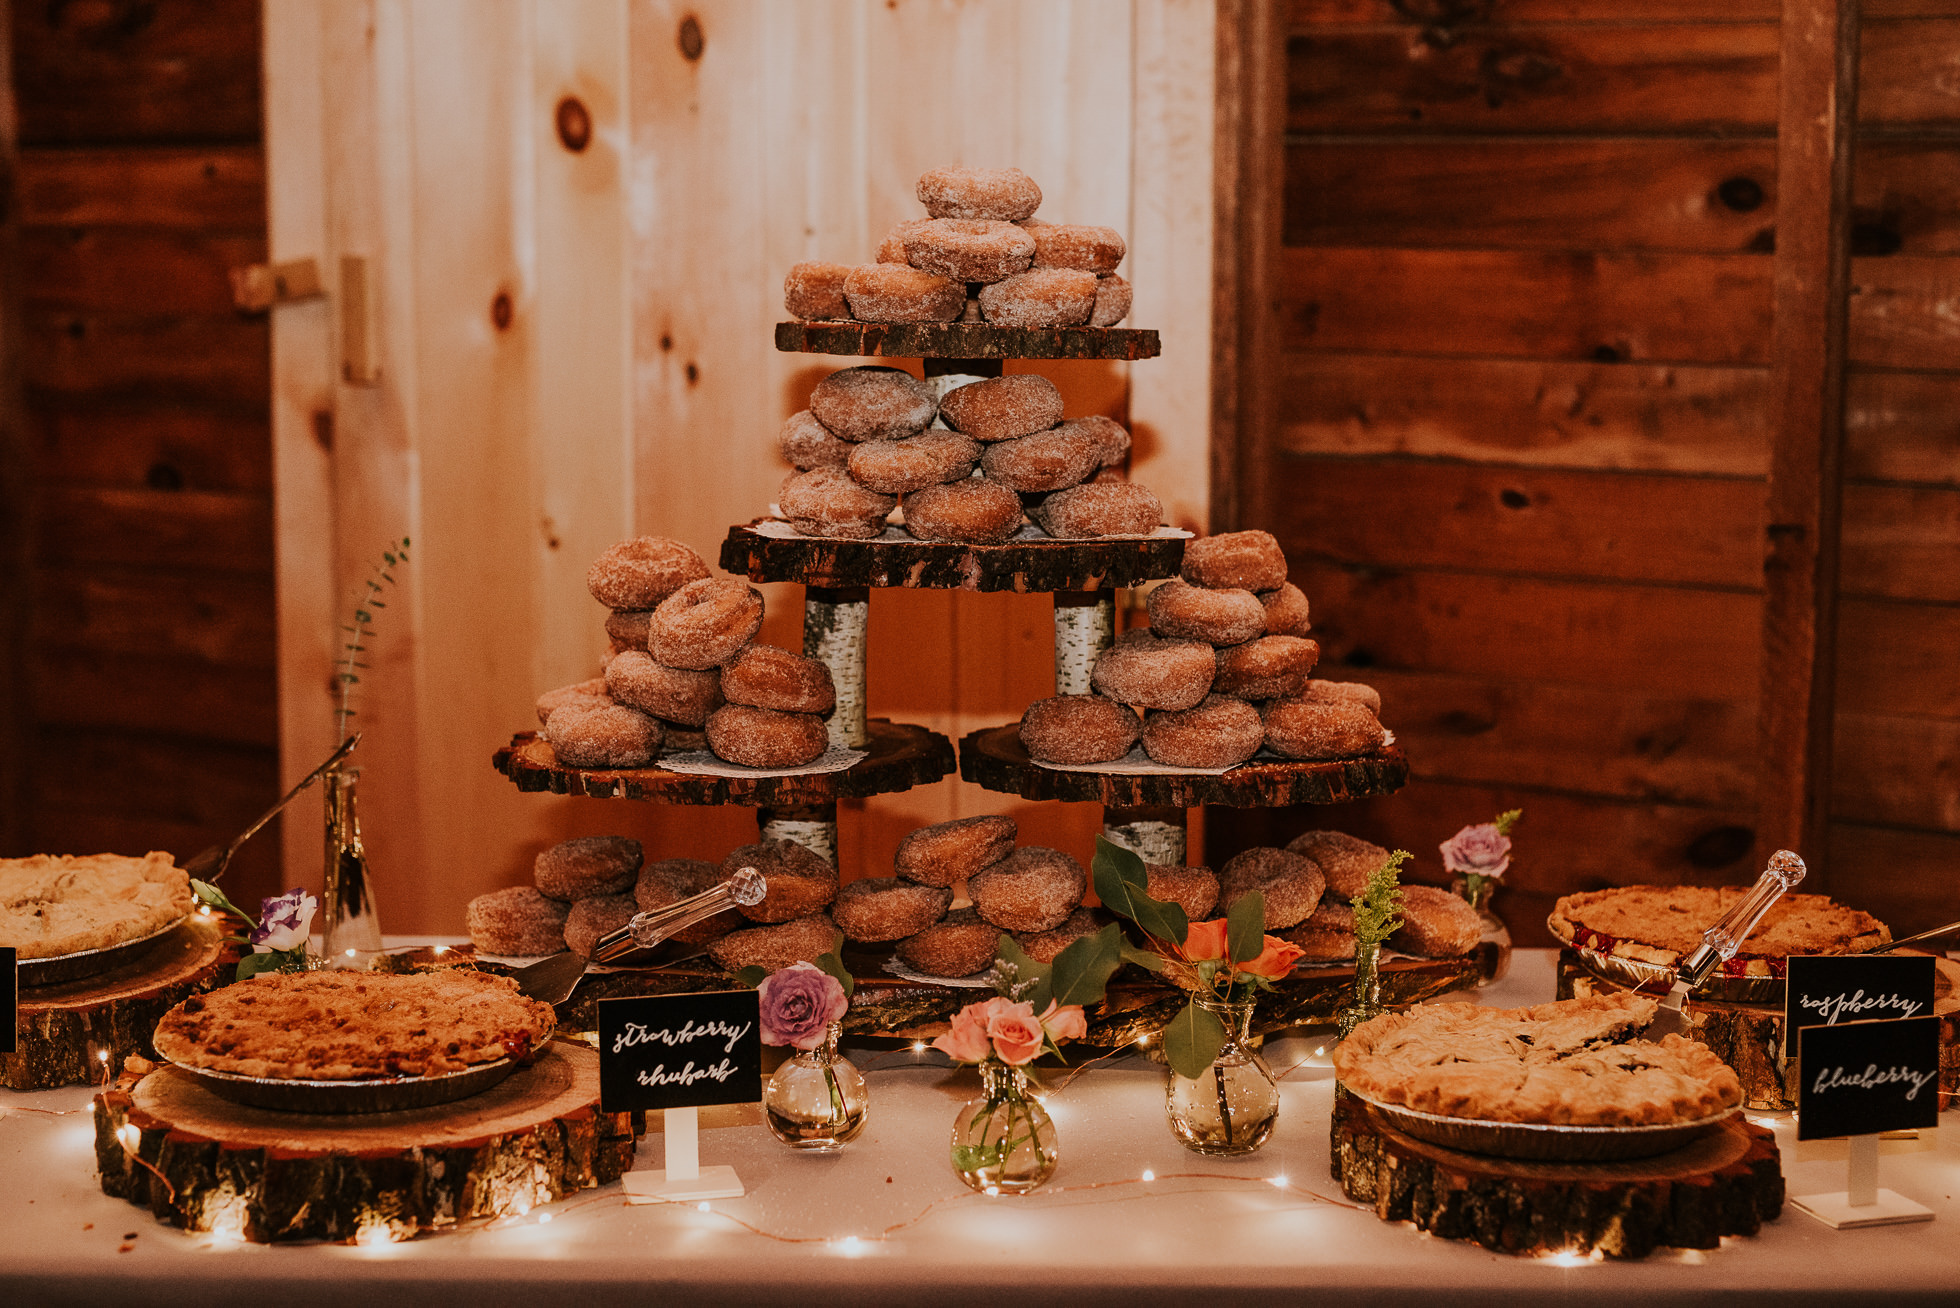 pies and donuts at olde tater barn wedding in central bridge photographed by traverse the tides